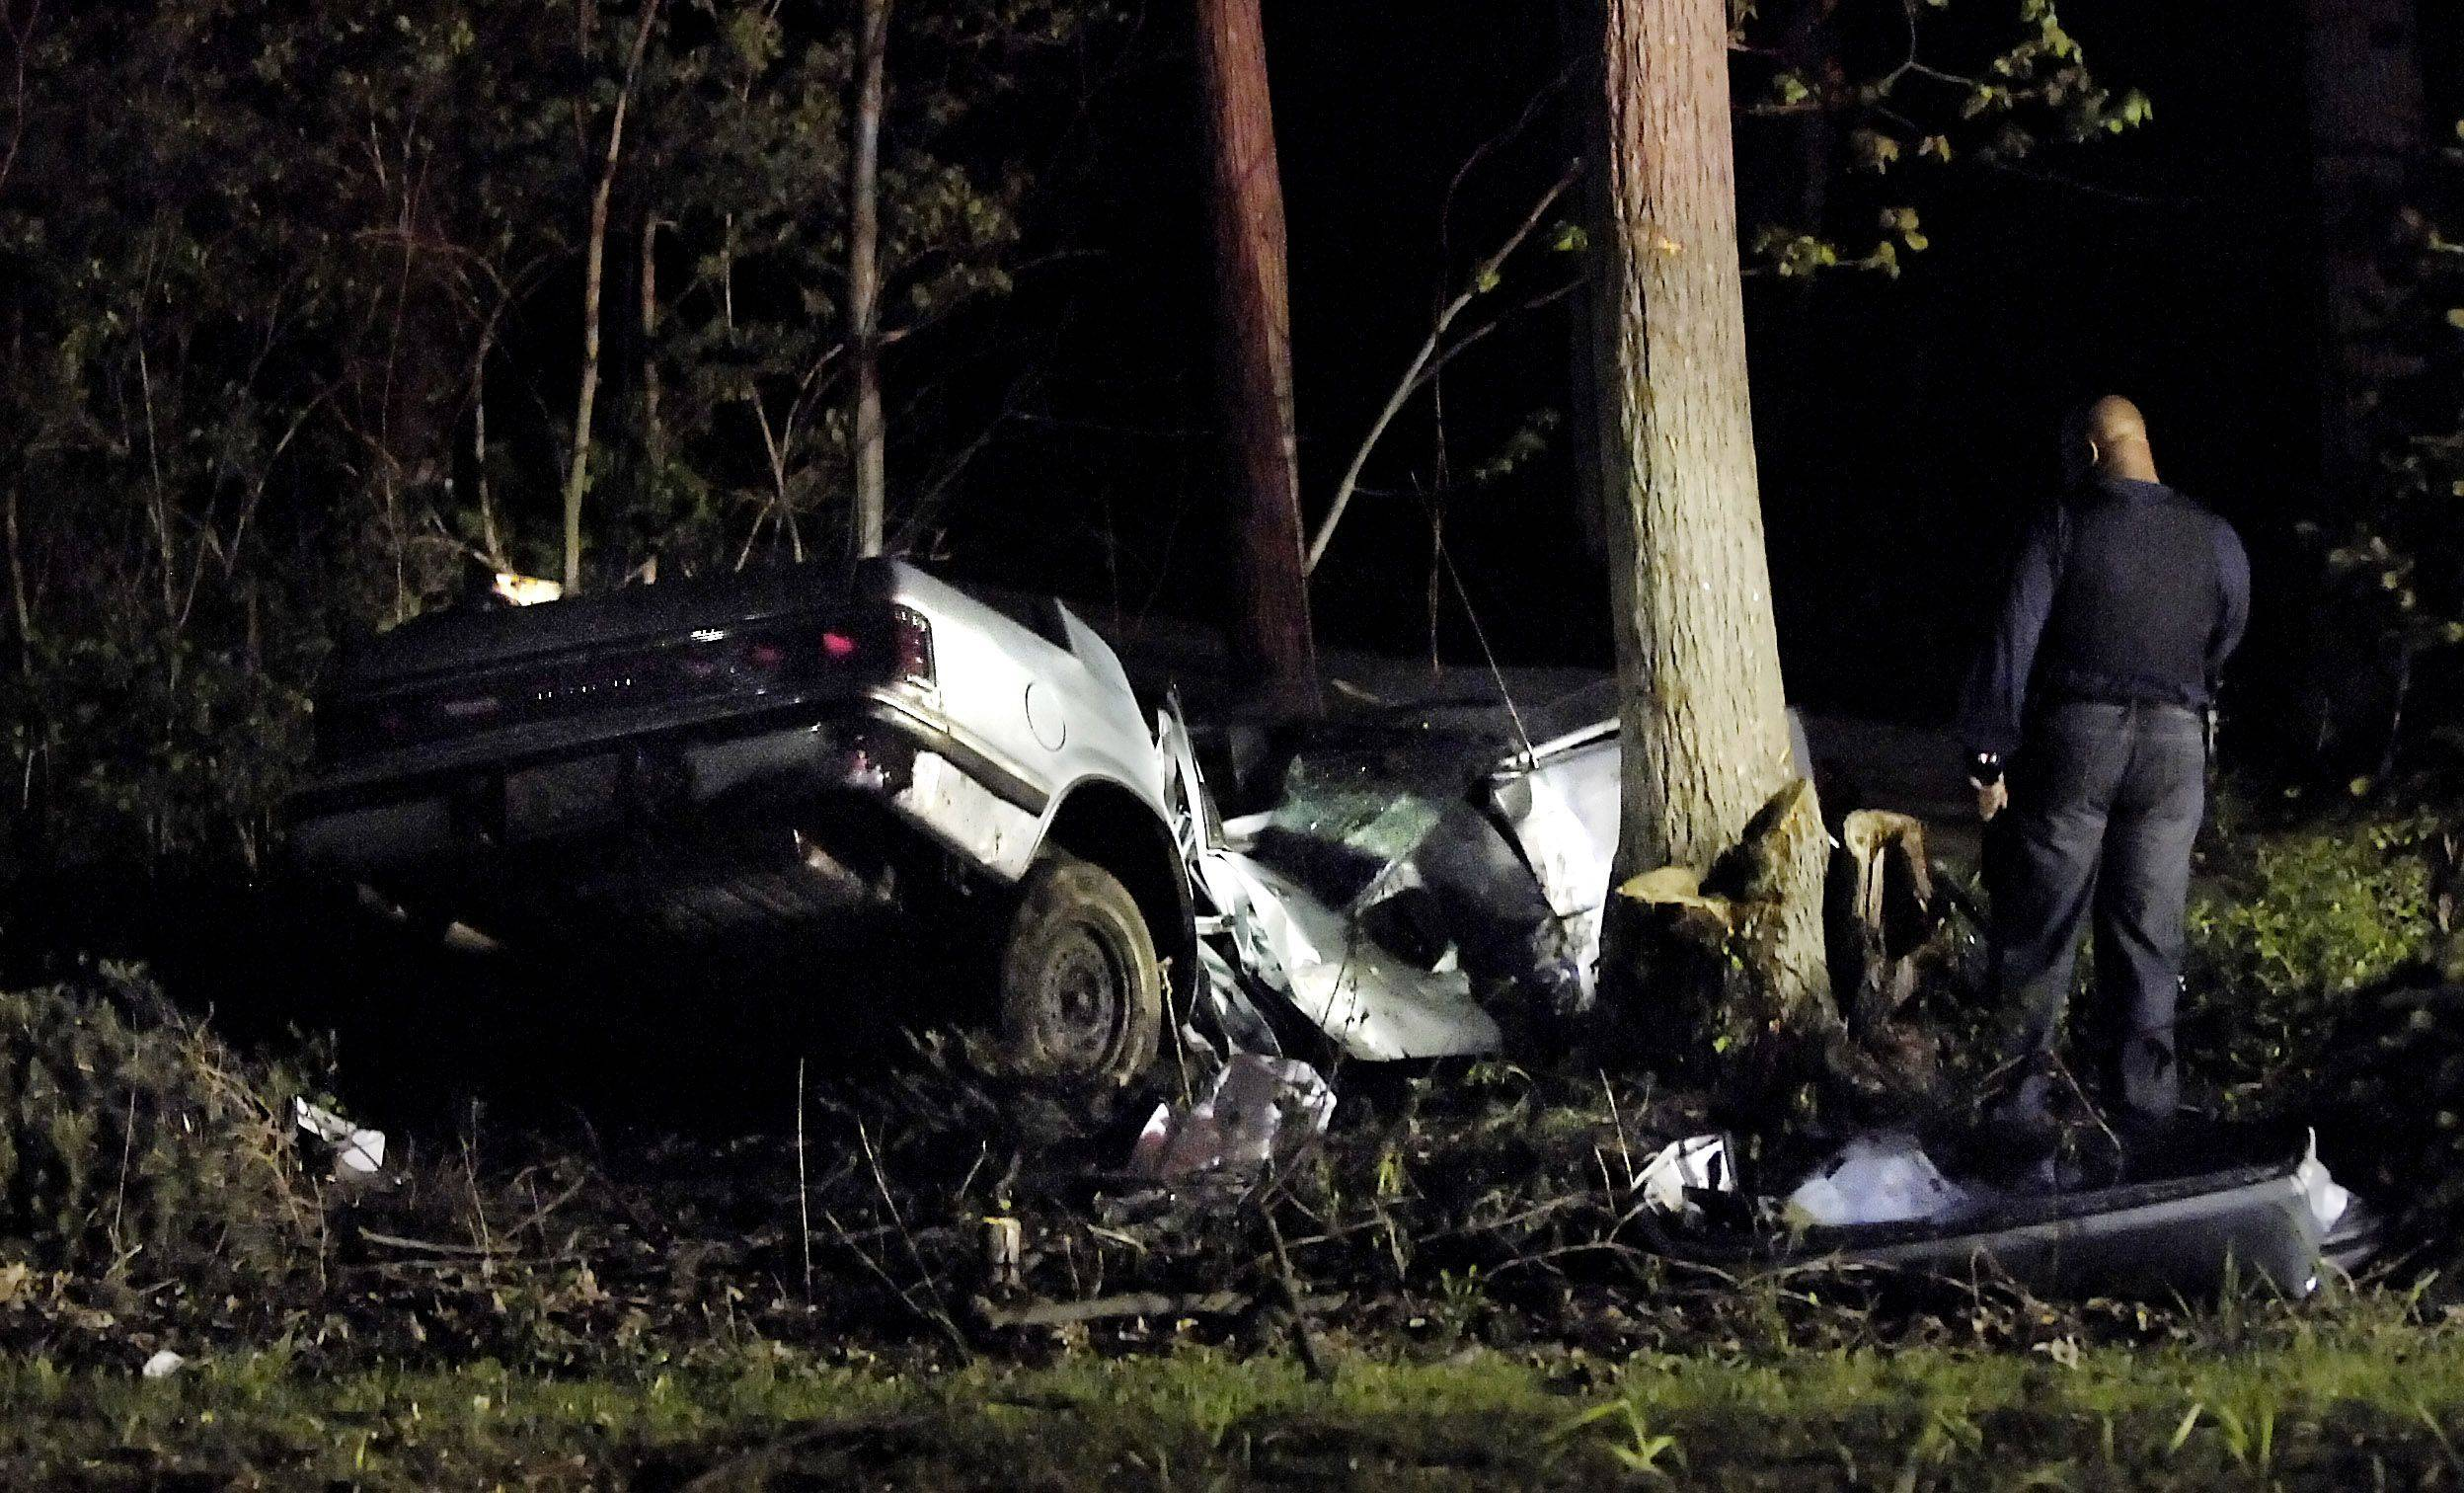 A rescuer uses a flashlight to look at the Dodge Dynasty that crashed into trees on Green Road south of Hughes Road in Elburn Monday.